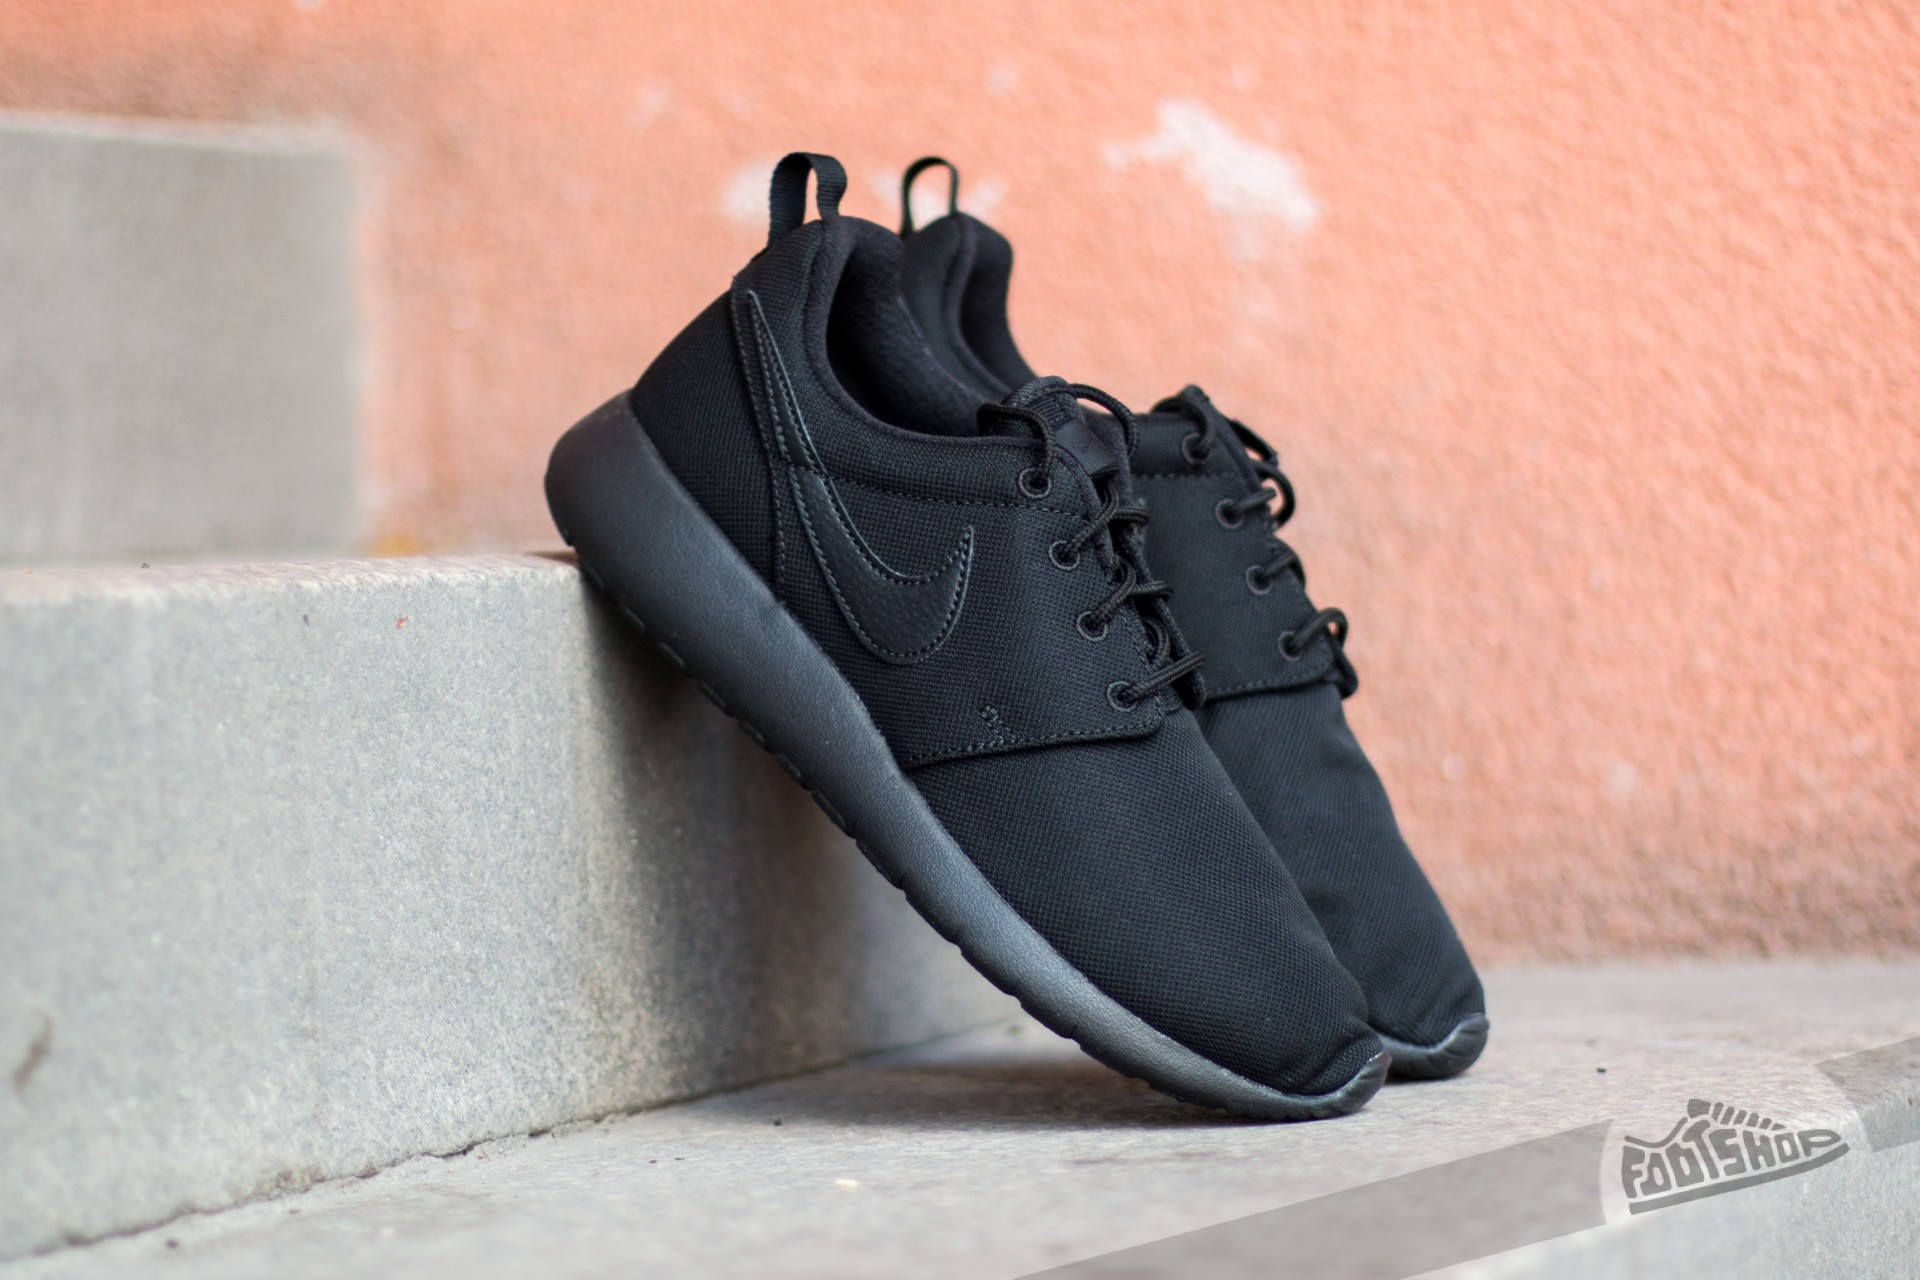 premium selection 19237 3e8dc Nike Roshe One (GS) Black/ Black-Black | Footshop